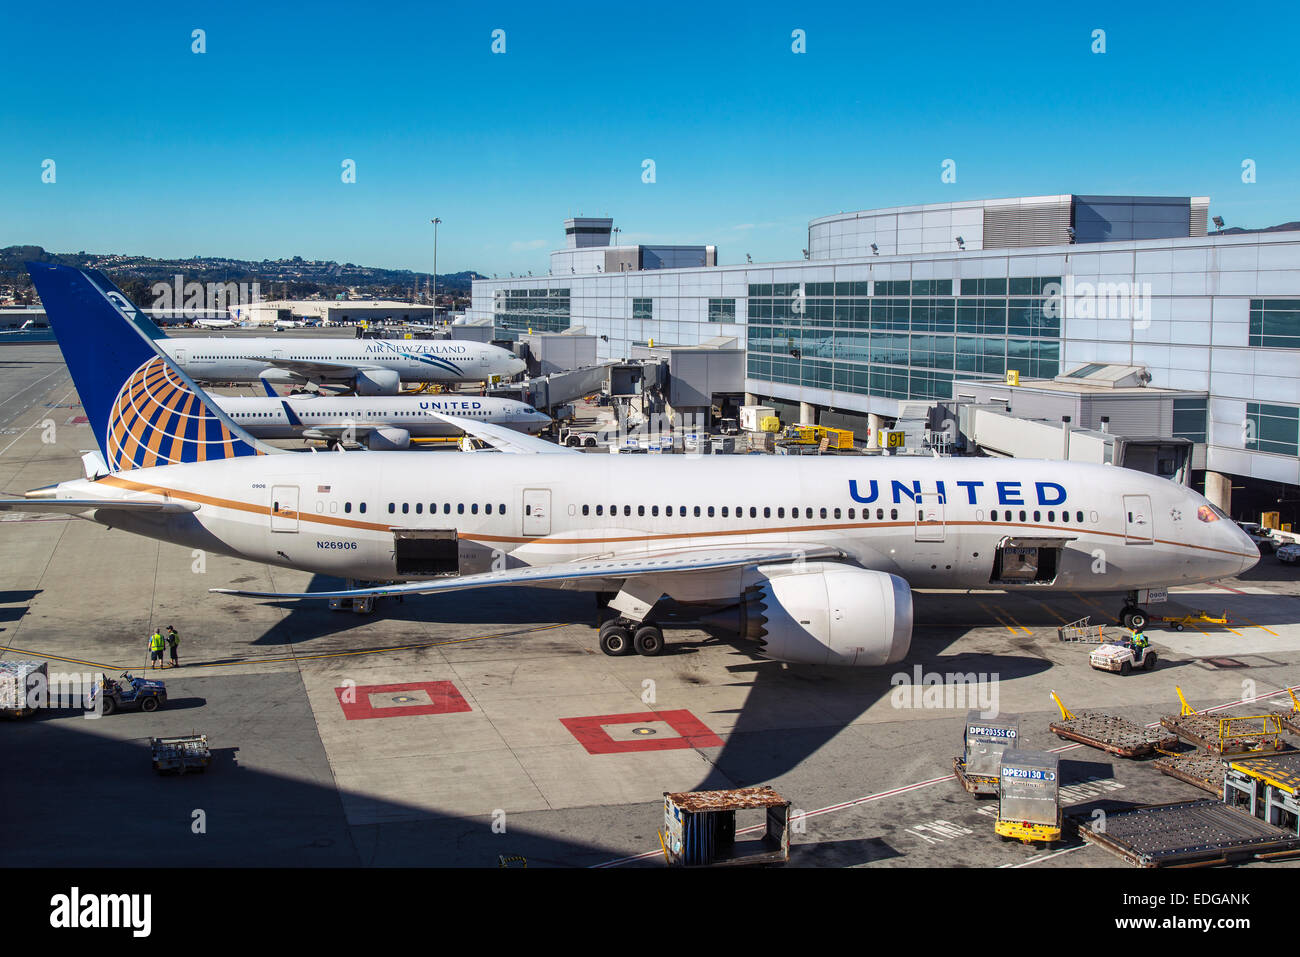 United Airlines Boeing 787-800 Dreamliner am internationalen Flughafen San Francisco, San Francisco, Kalifornien, Stockbild